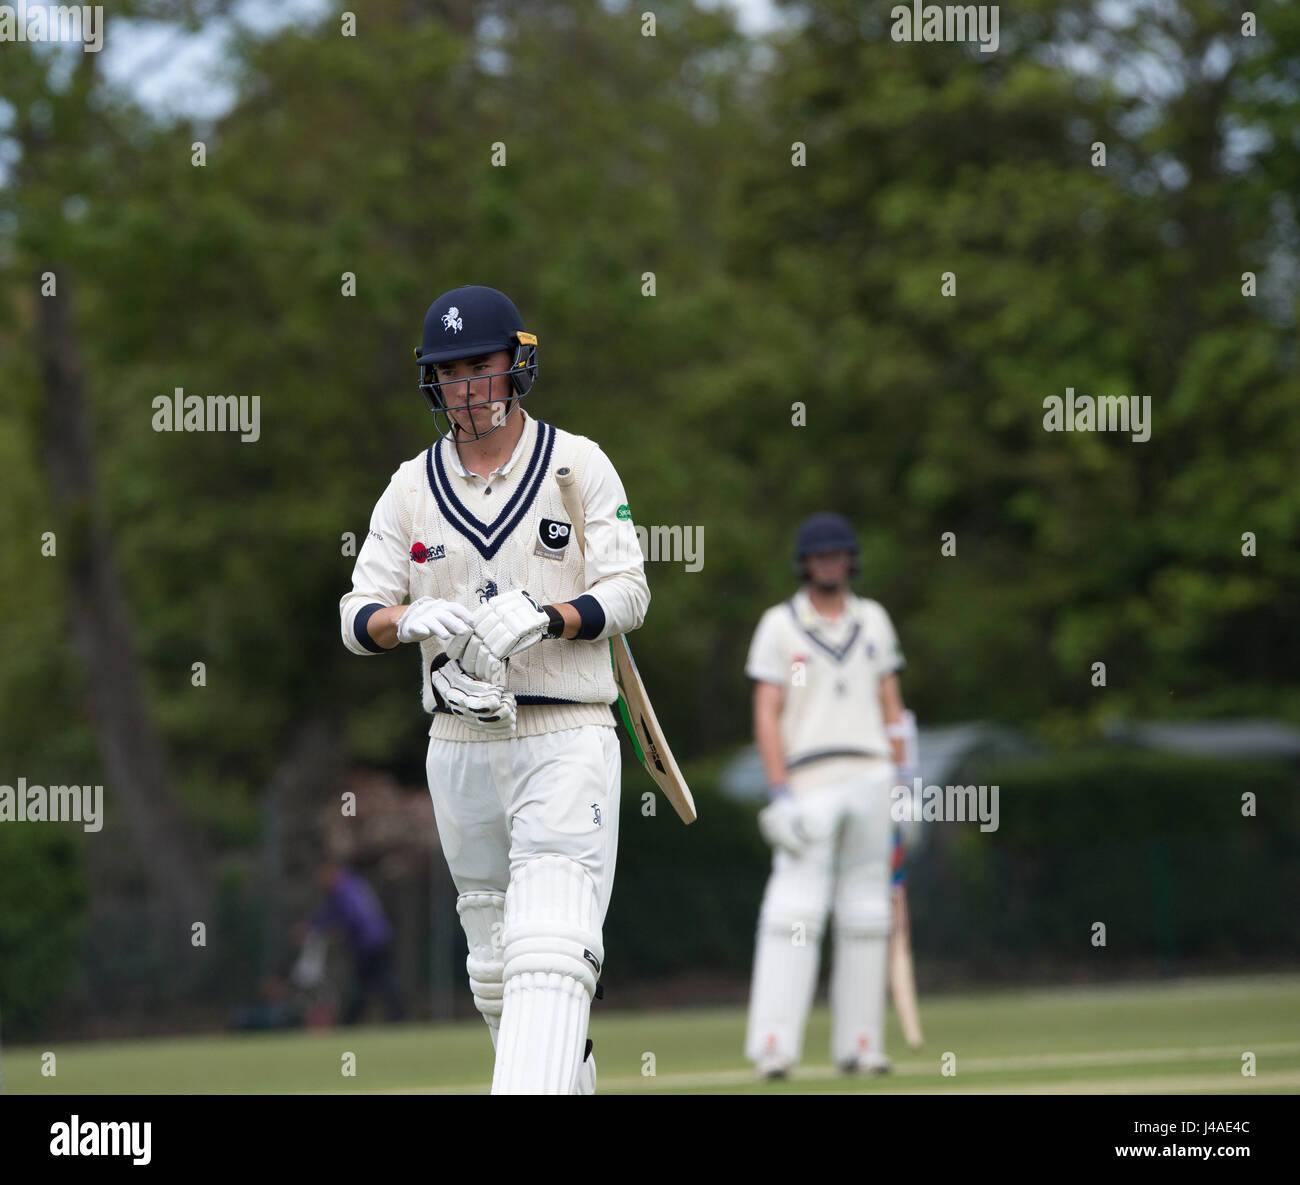 Cricket at Polo Farm, Canterbury, Kent. A batsman departs after being dismissed - Stock Image